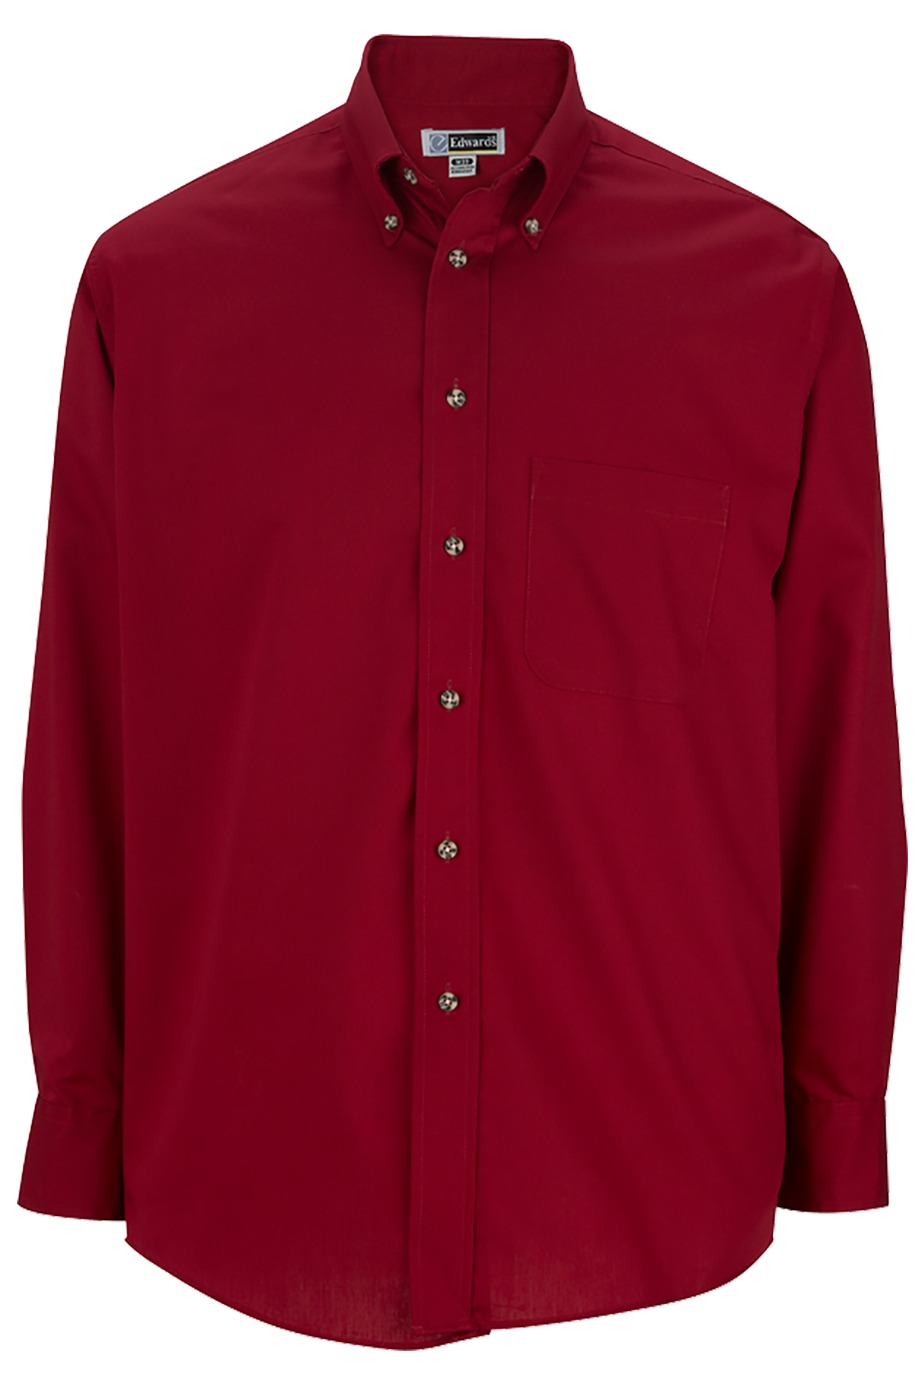 Edwards Garment 1280 - Men's Easy Care Poplin Shirt